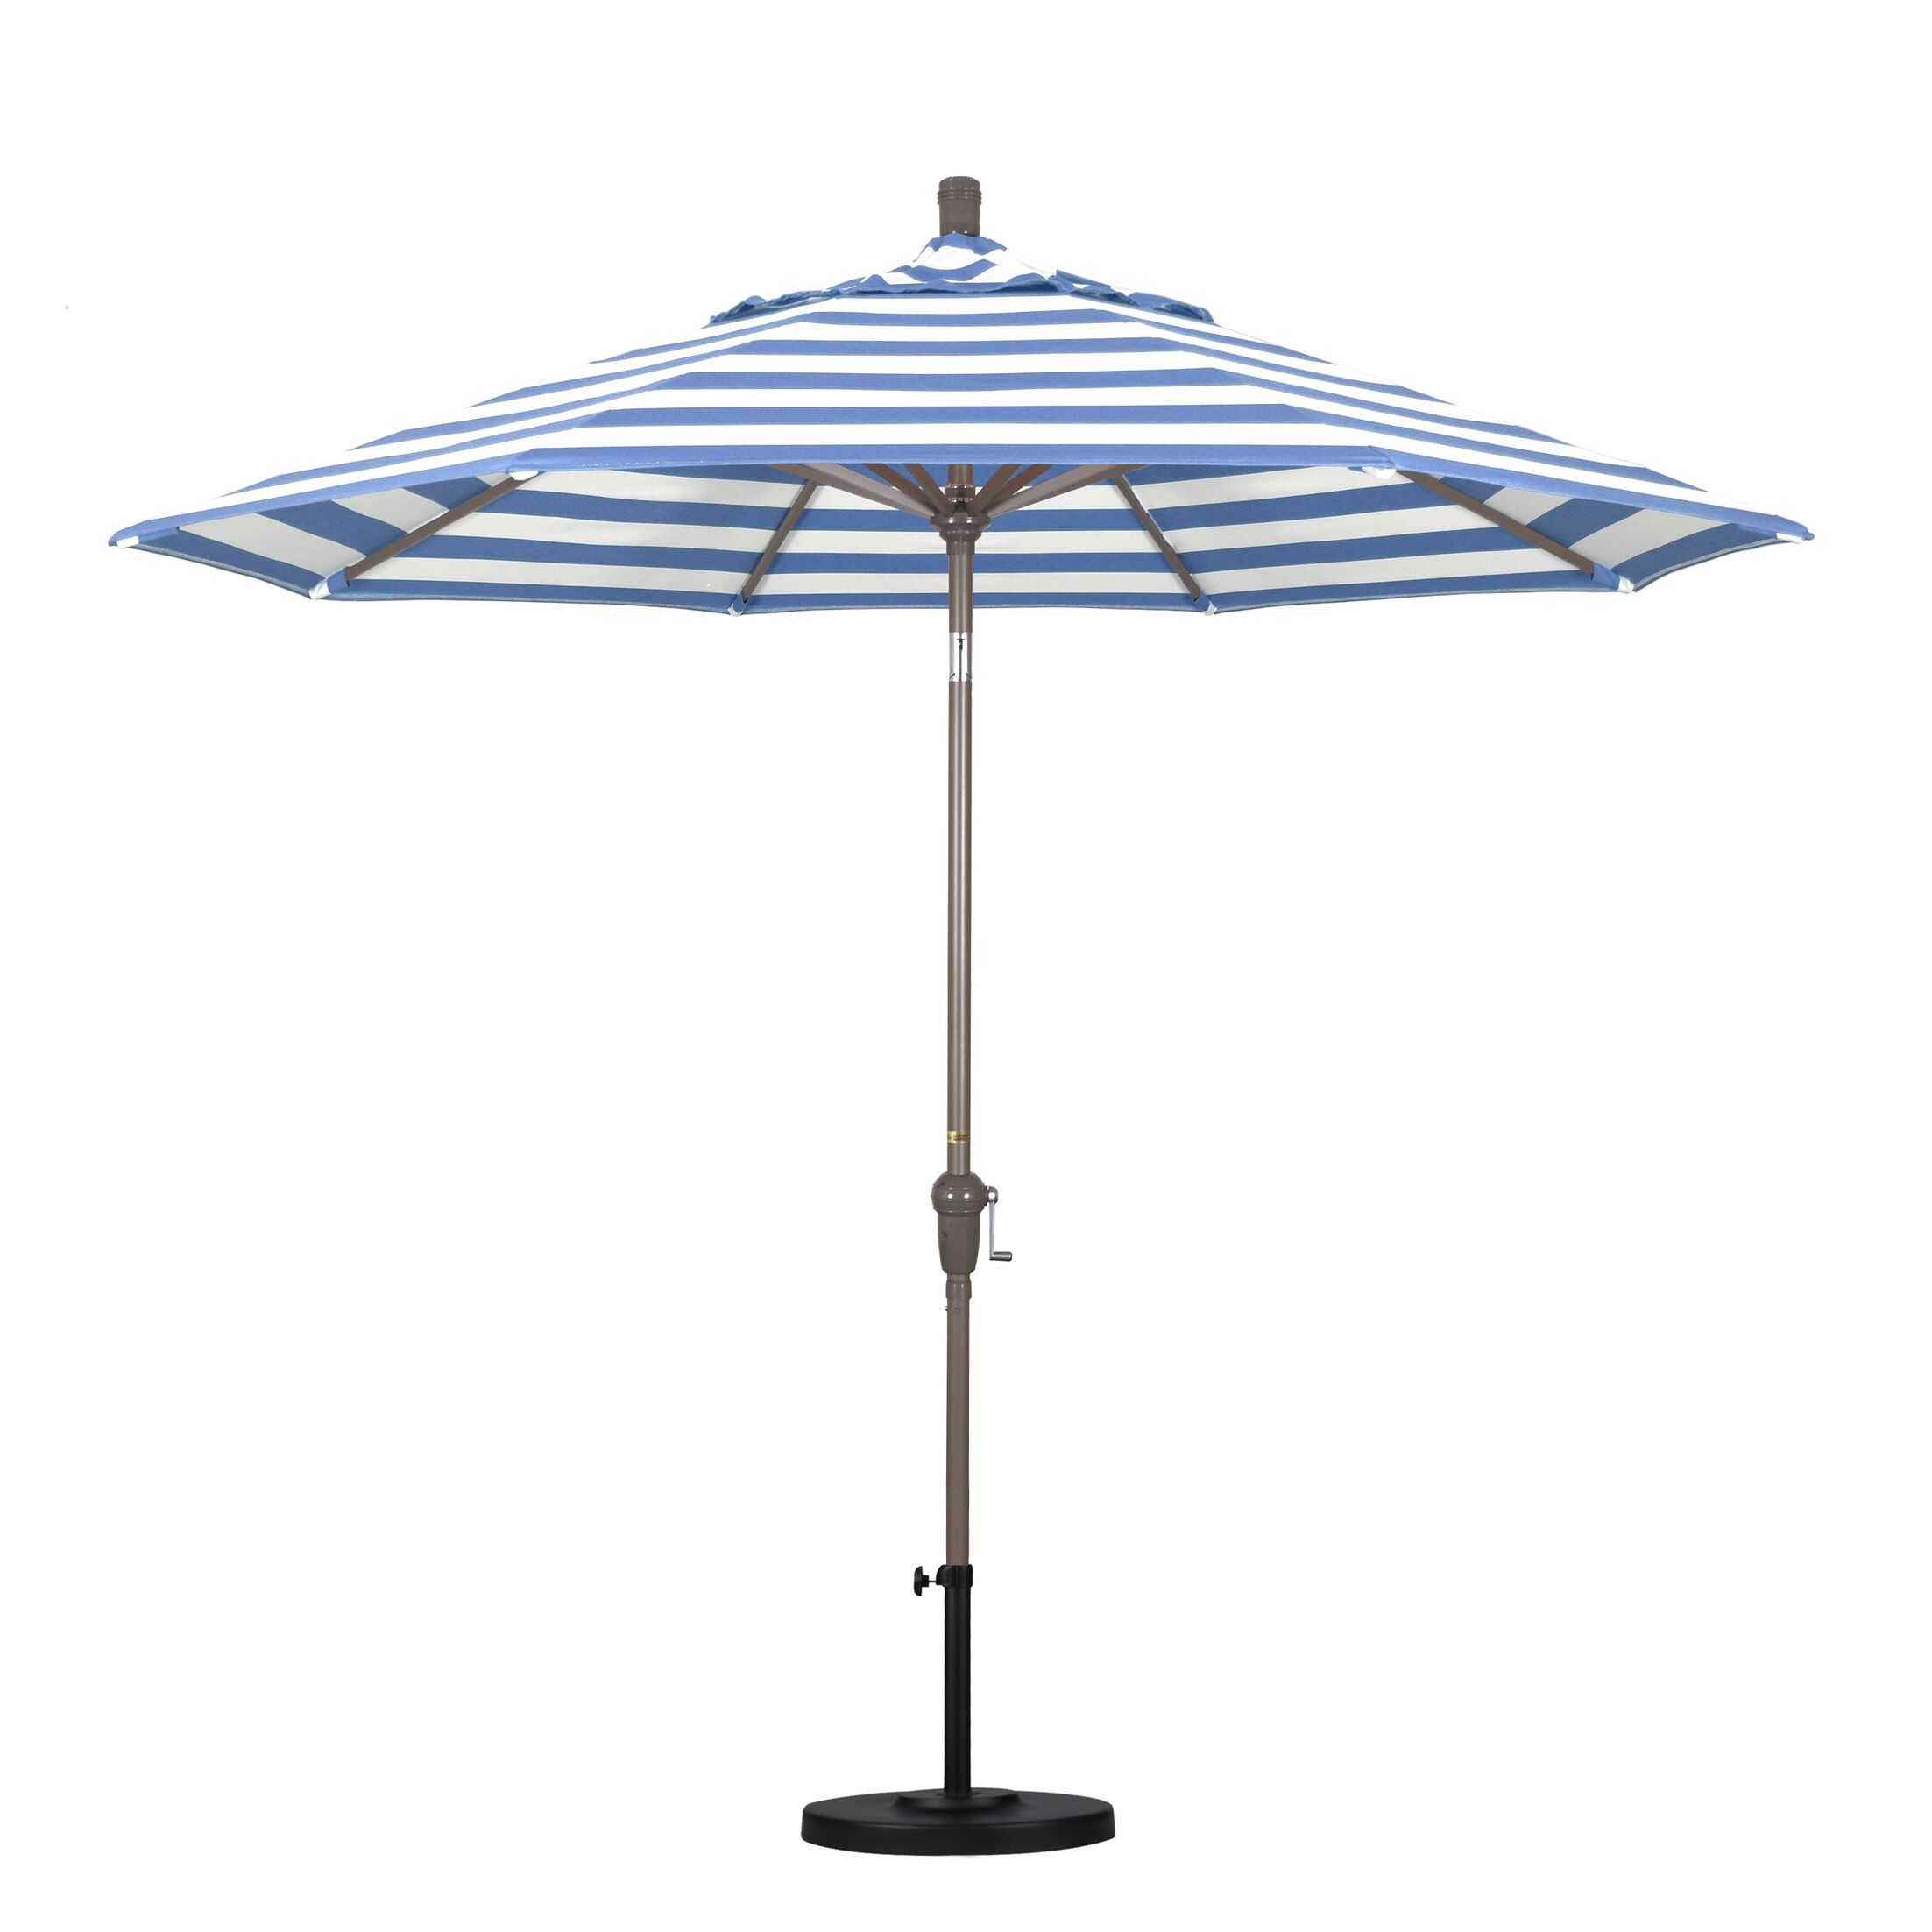 8.5' Market Umbrella Fabric Color: Regatta, Frame Color: Champagne